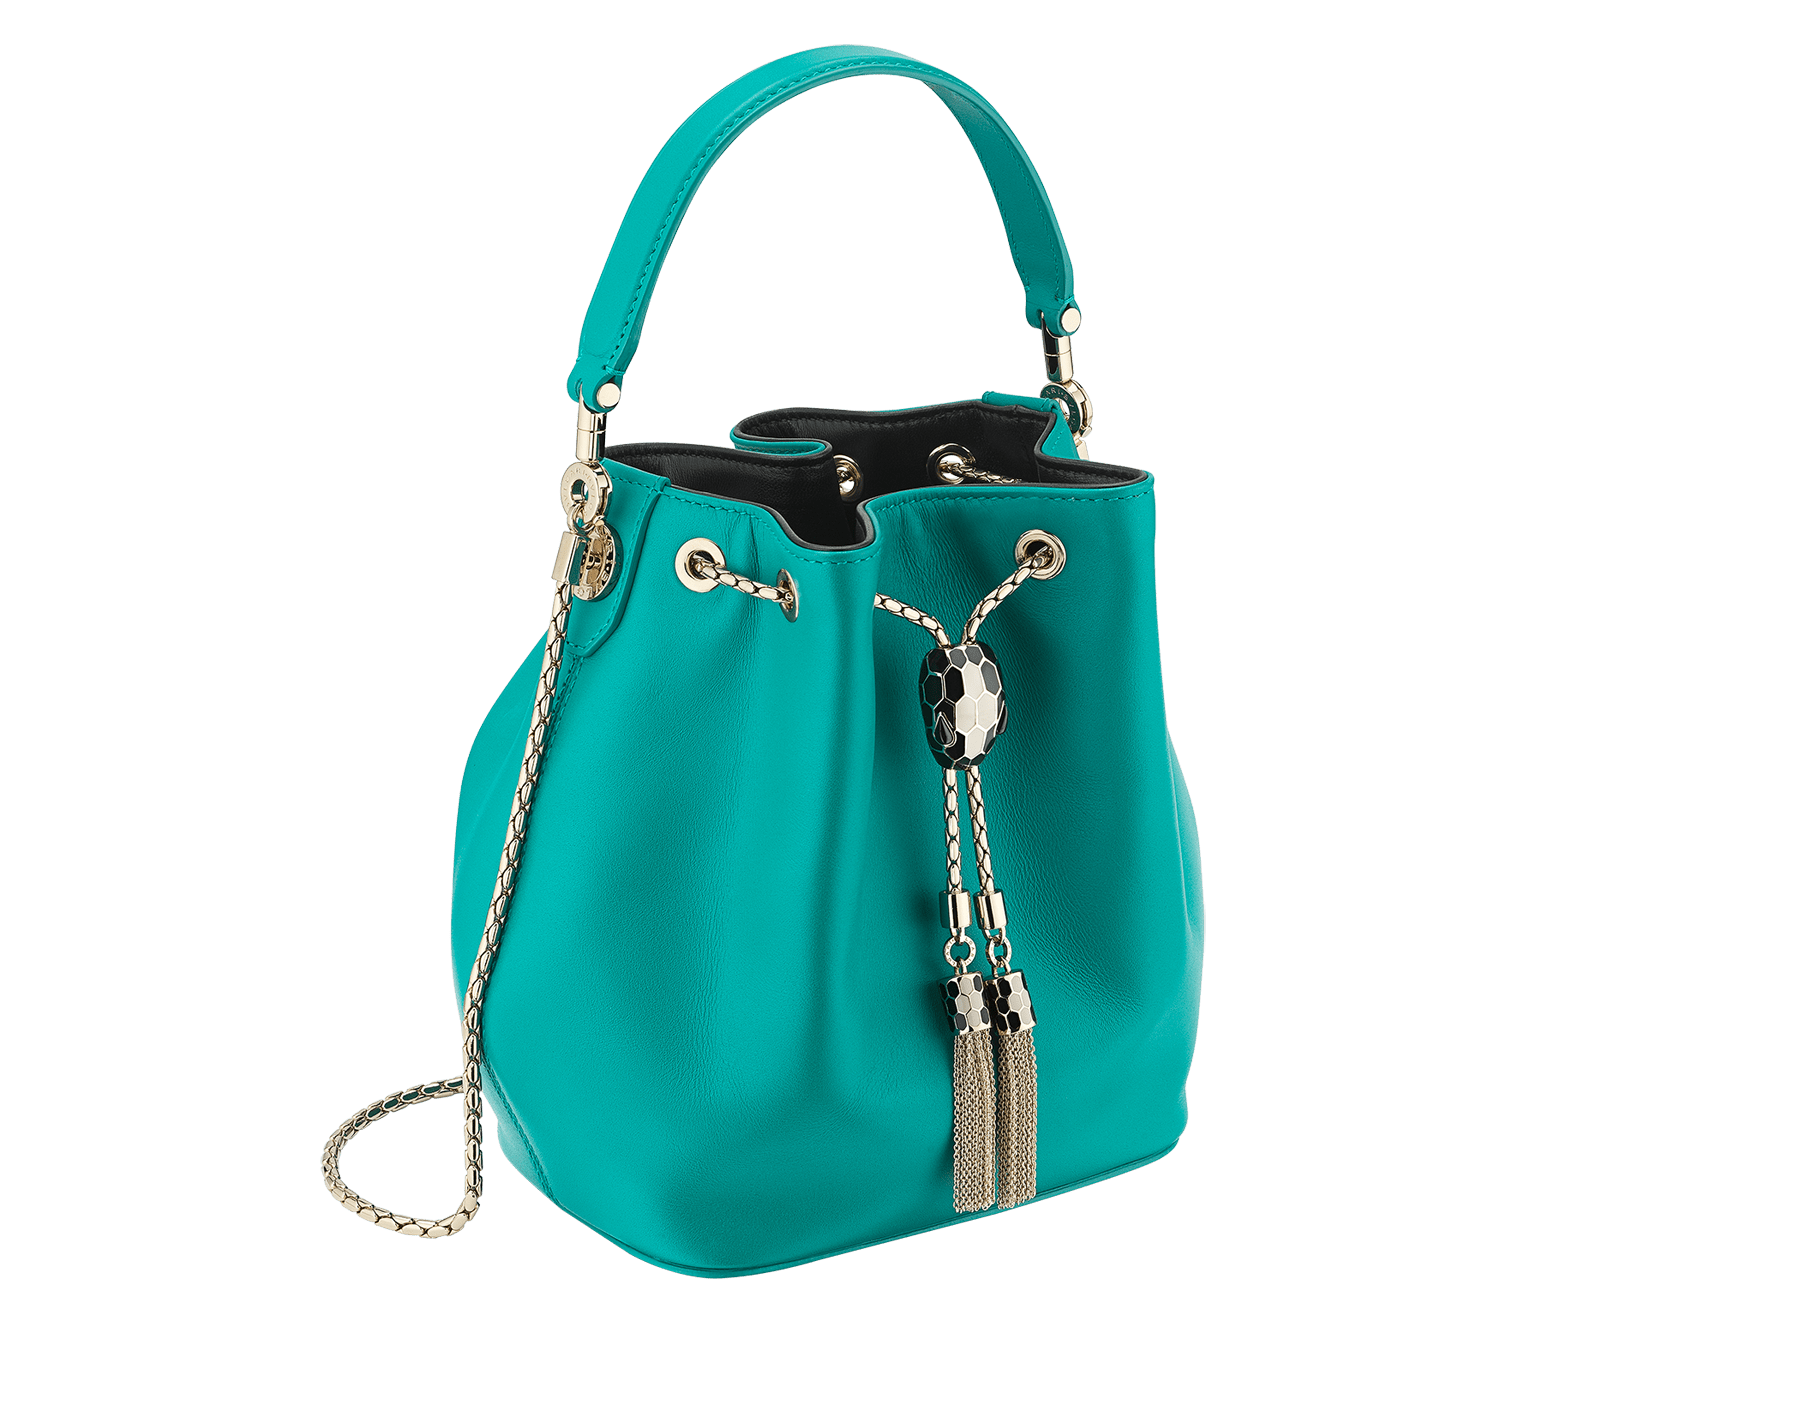 Serpenti Forever bucket bag in tropical turquoise smooth calf leather and black nappa inner lining. Snakehead closure in light gold plated brass decorated with black and white enamel, and black onyx eyes. 287981 image 2